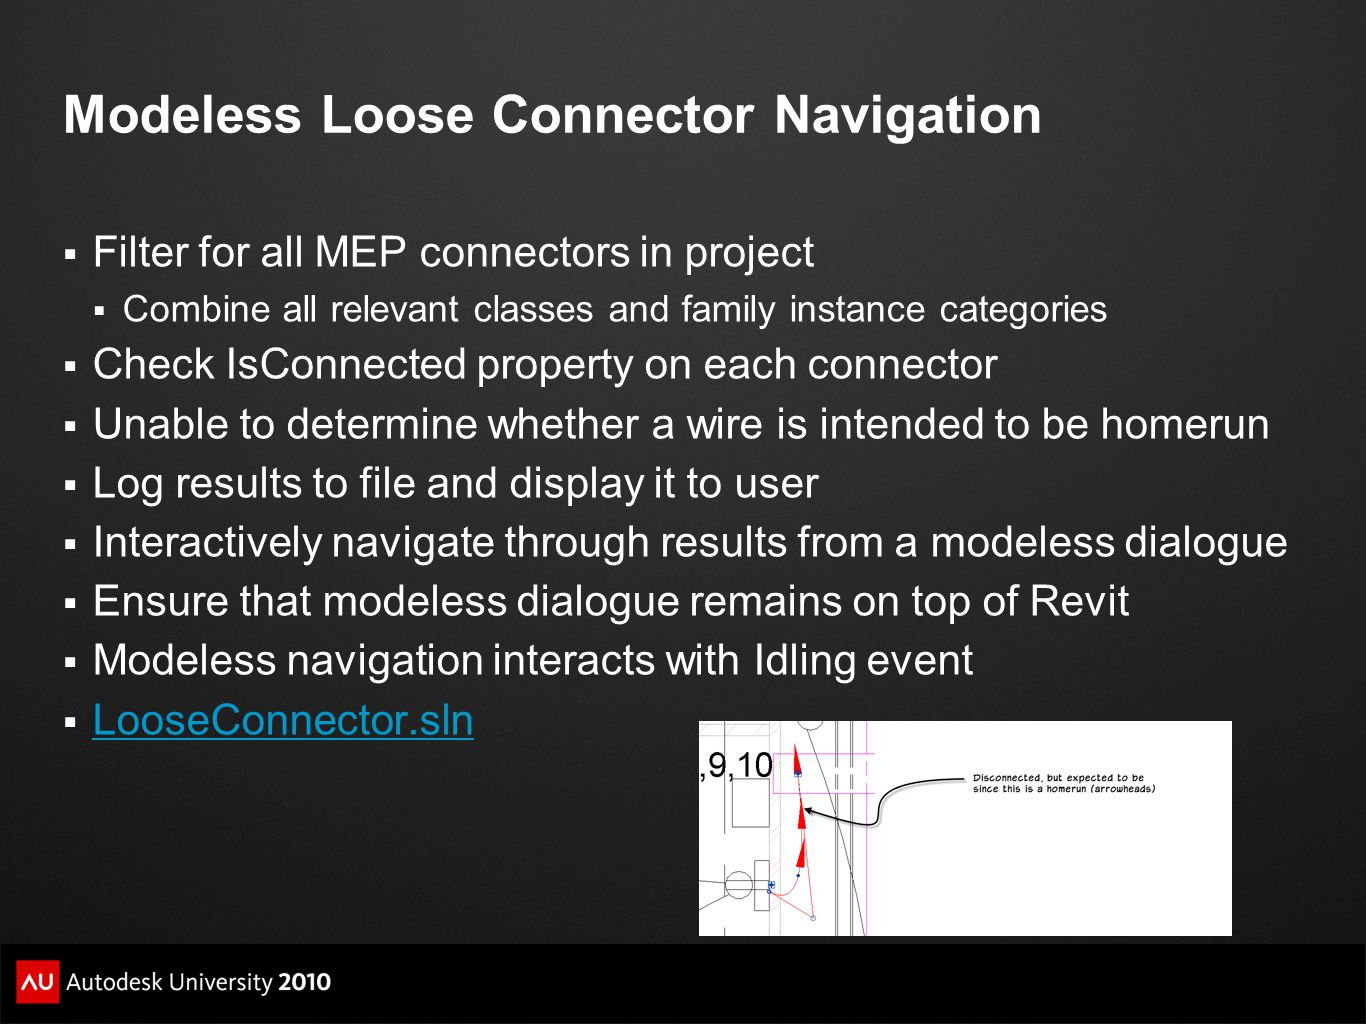 Modeless Loose Connector Navigation